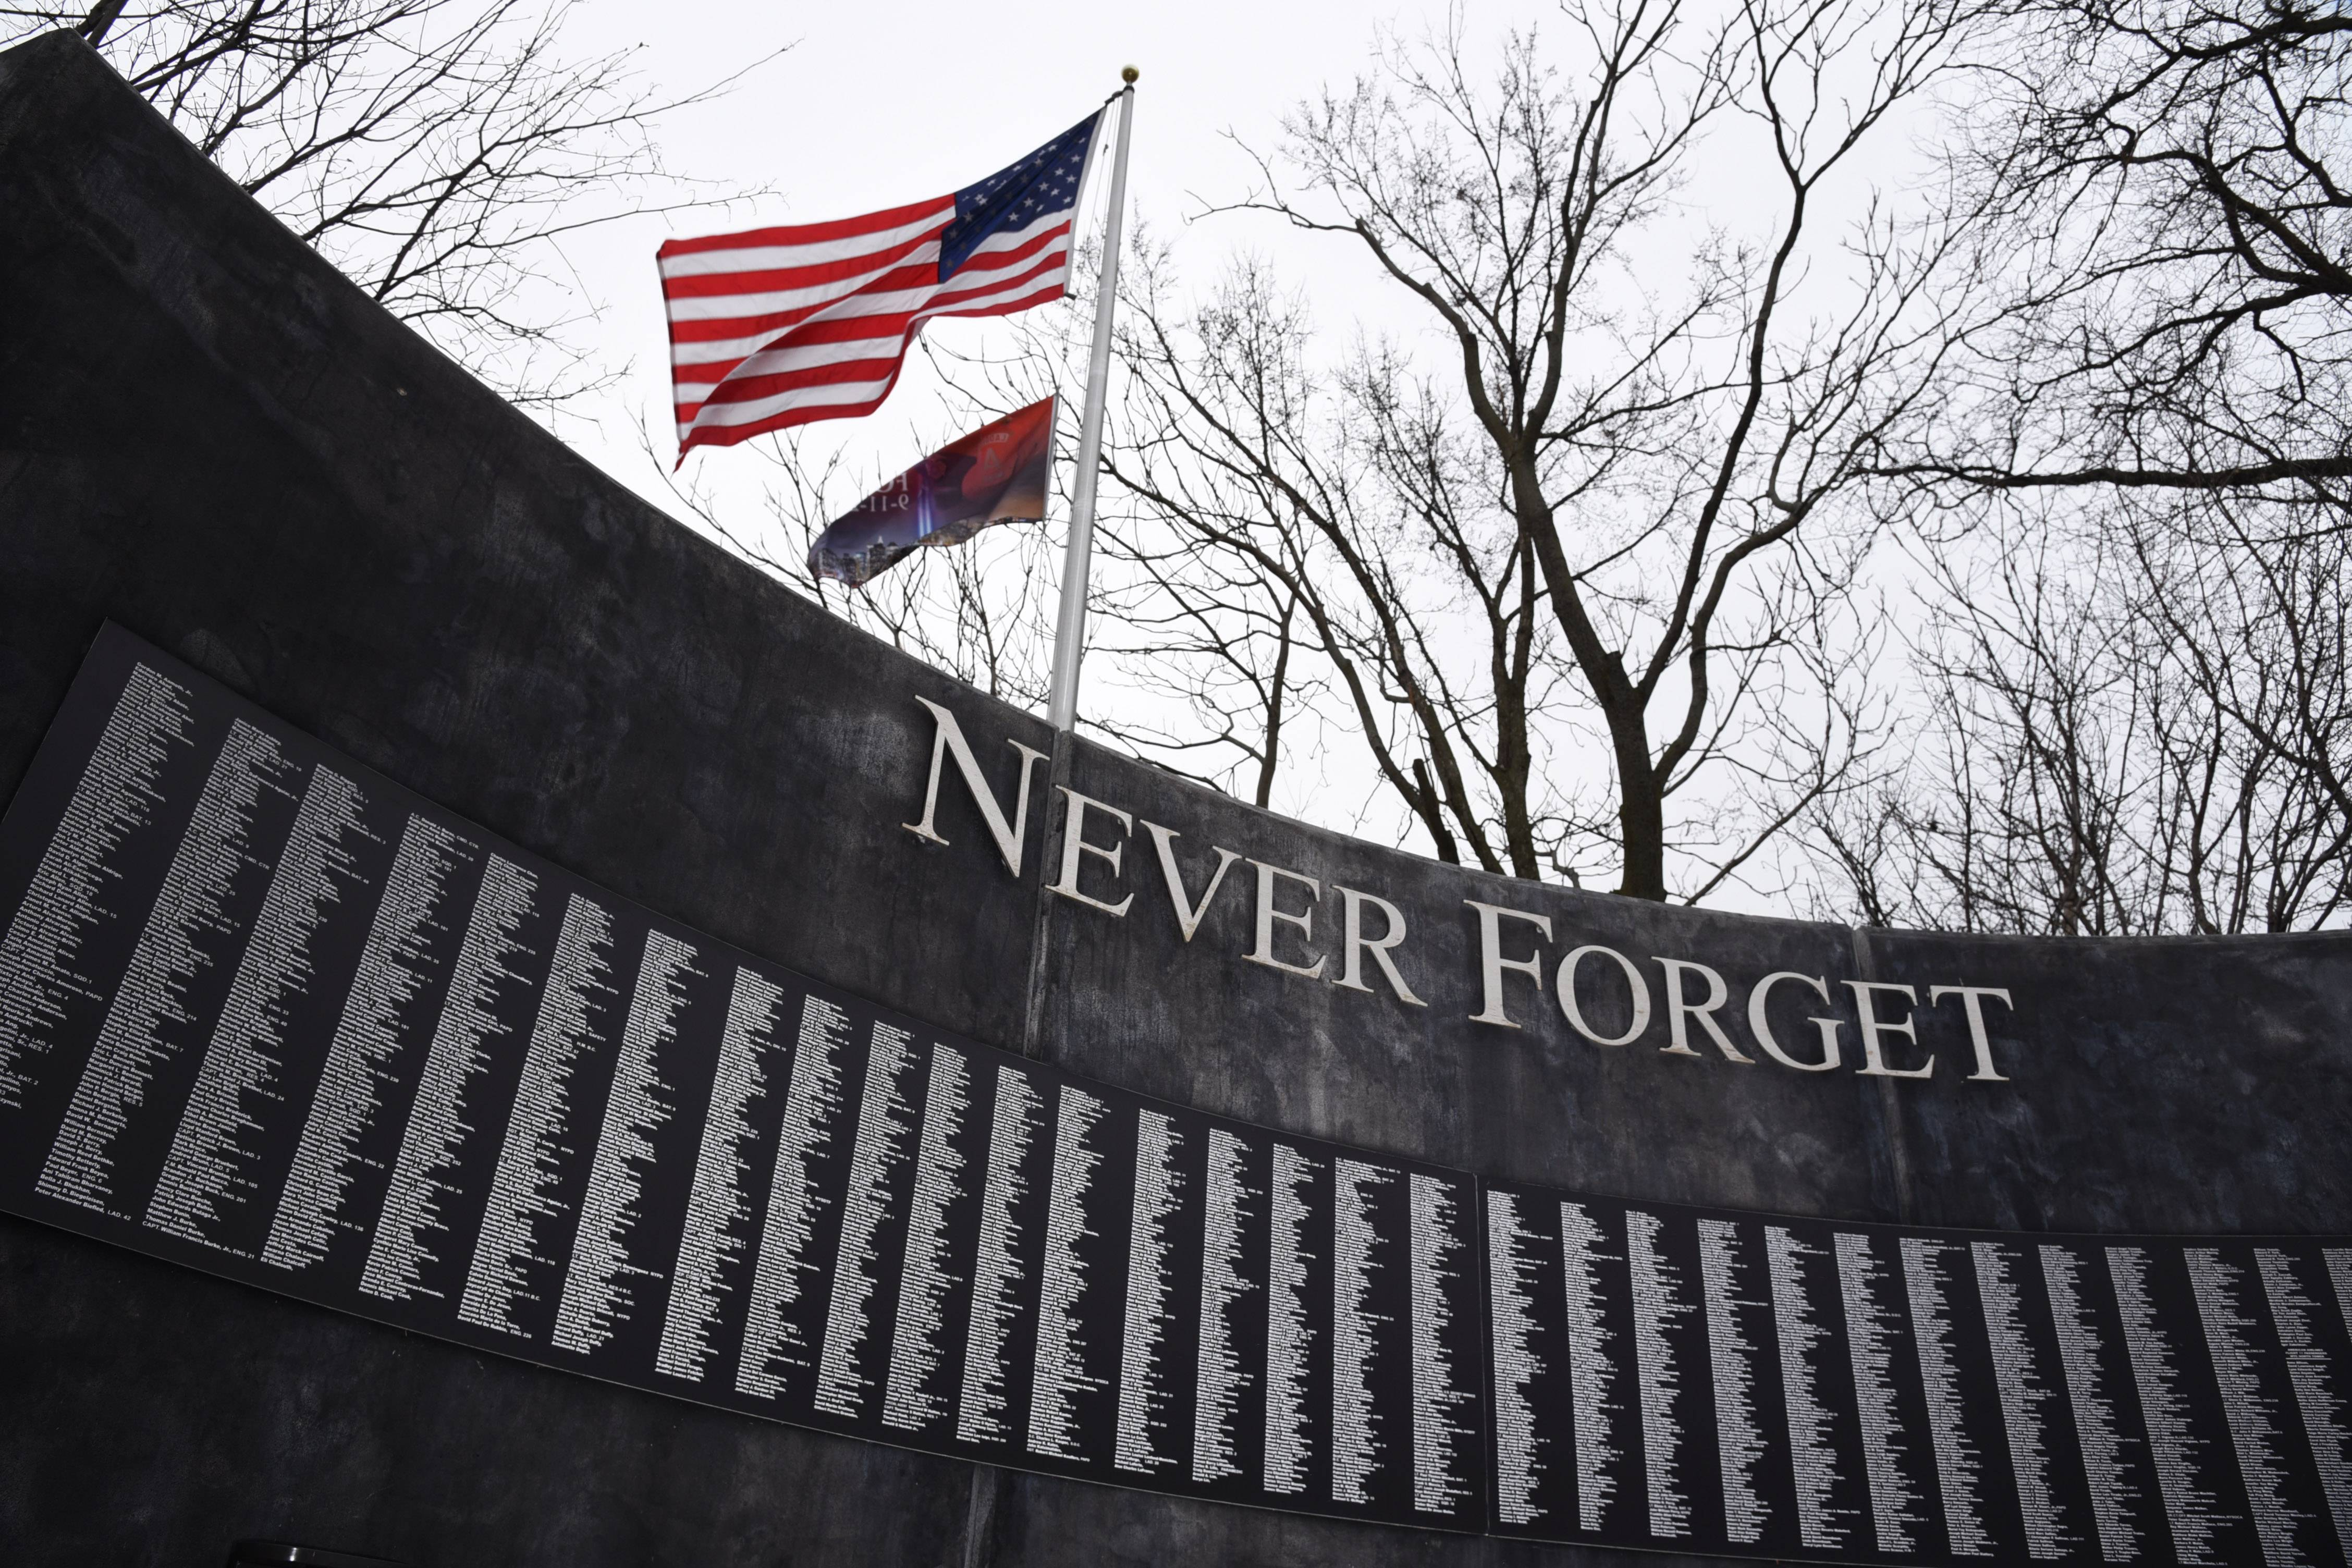 Wauconda voters want Iraq, Afghanistan vets honored at Sept. 11 memorial